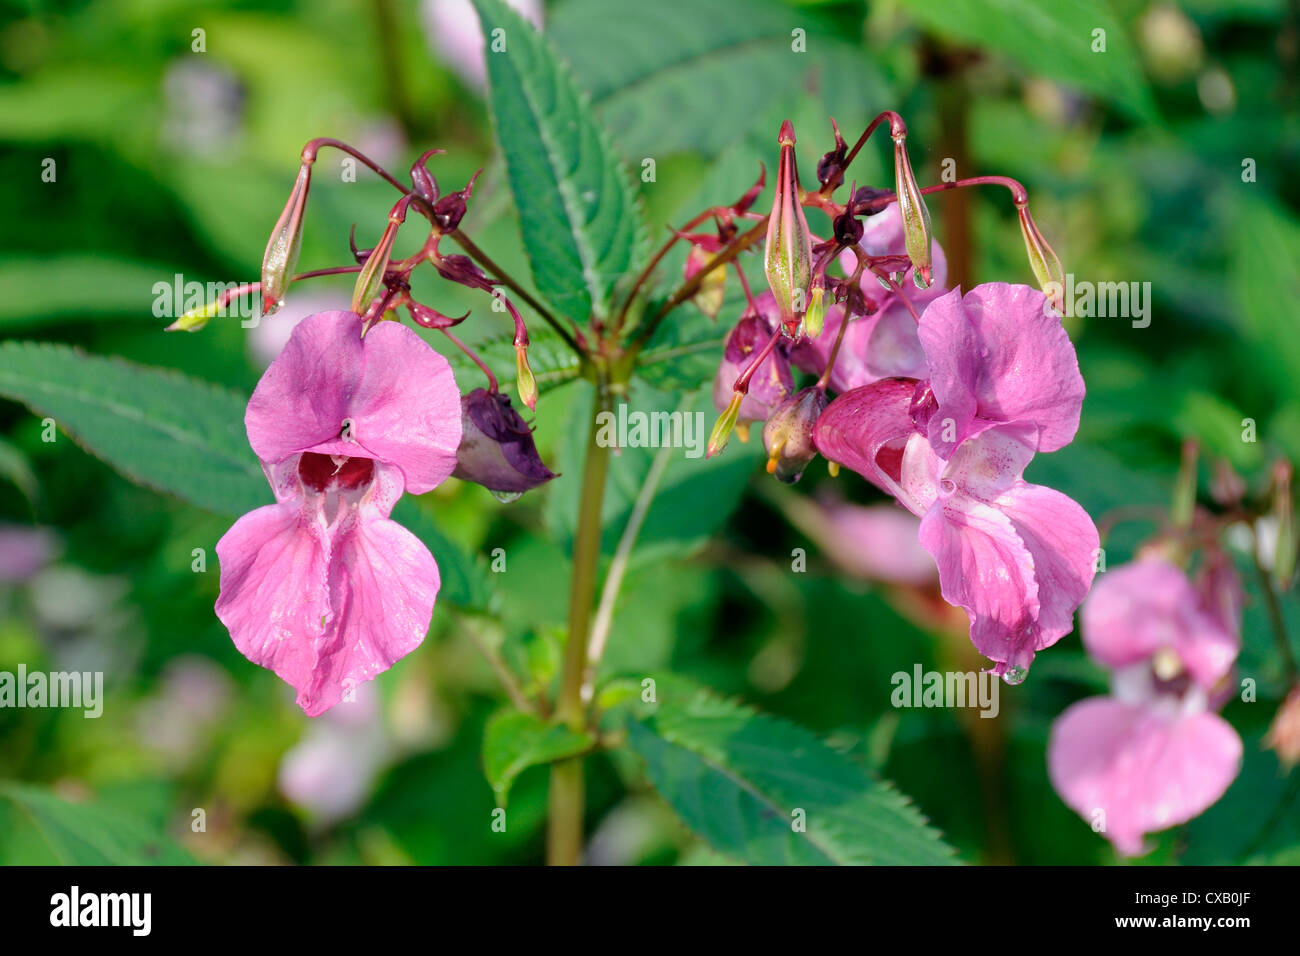 Himalayan balsam (Impatiens glandulifera) flowers and seed pods, Wiltshire, England, United Kingdom, Europe - Stock Image